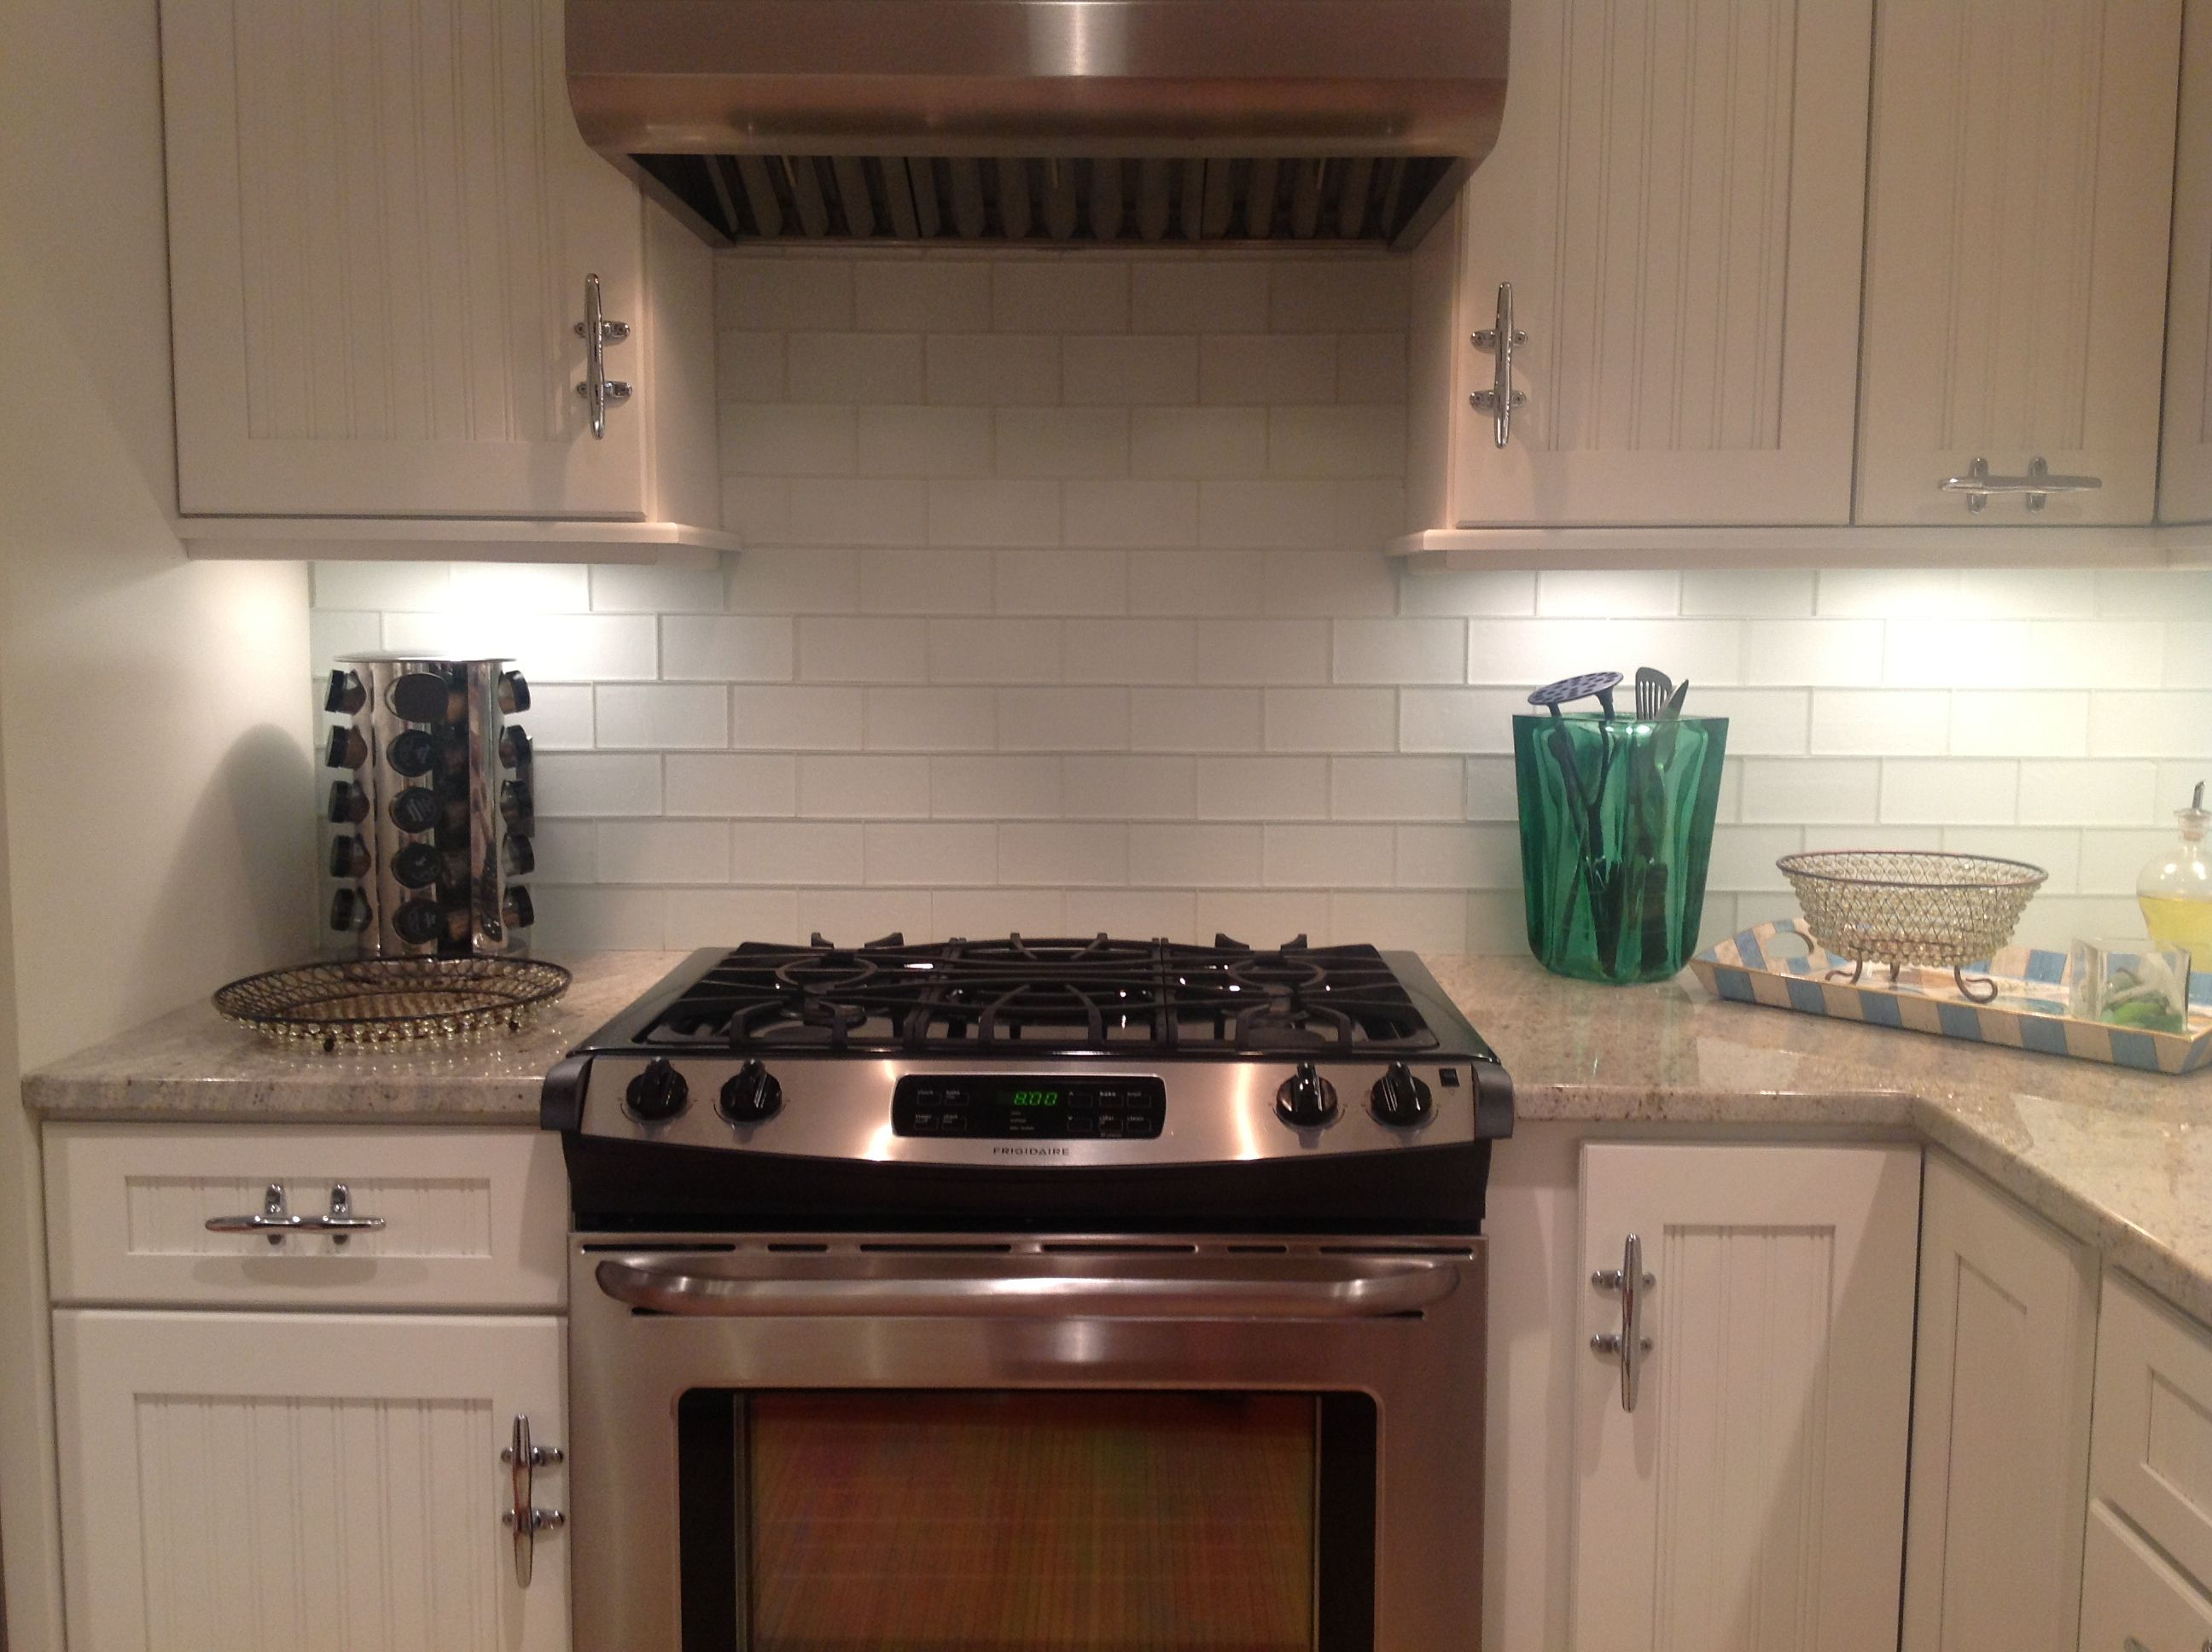 Modern Kitchen Subway Tile Backsplash Frosted White Glass Subway Tile  Subway Tiles Kitchen Backsplash